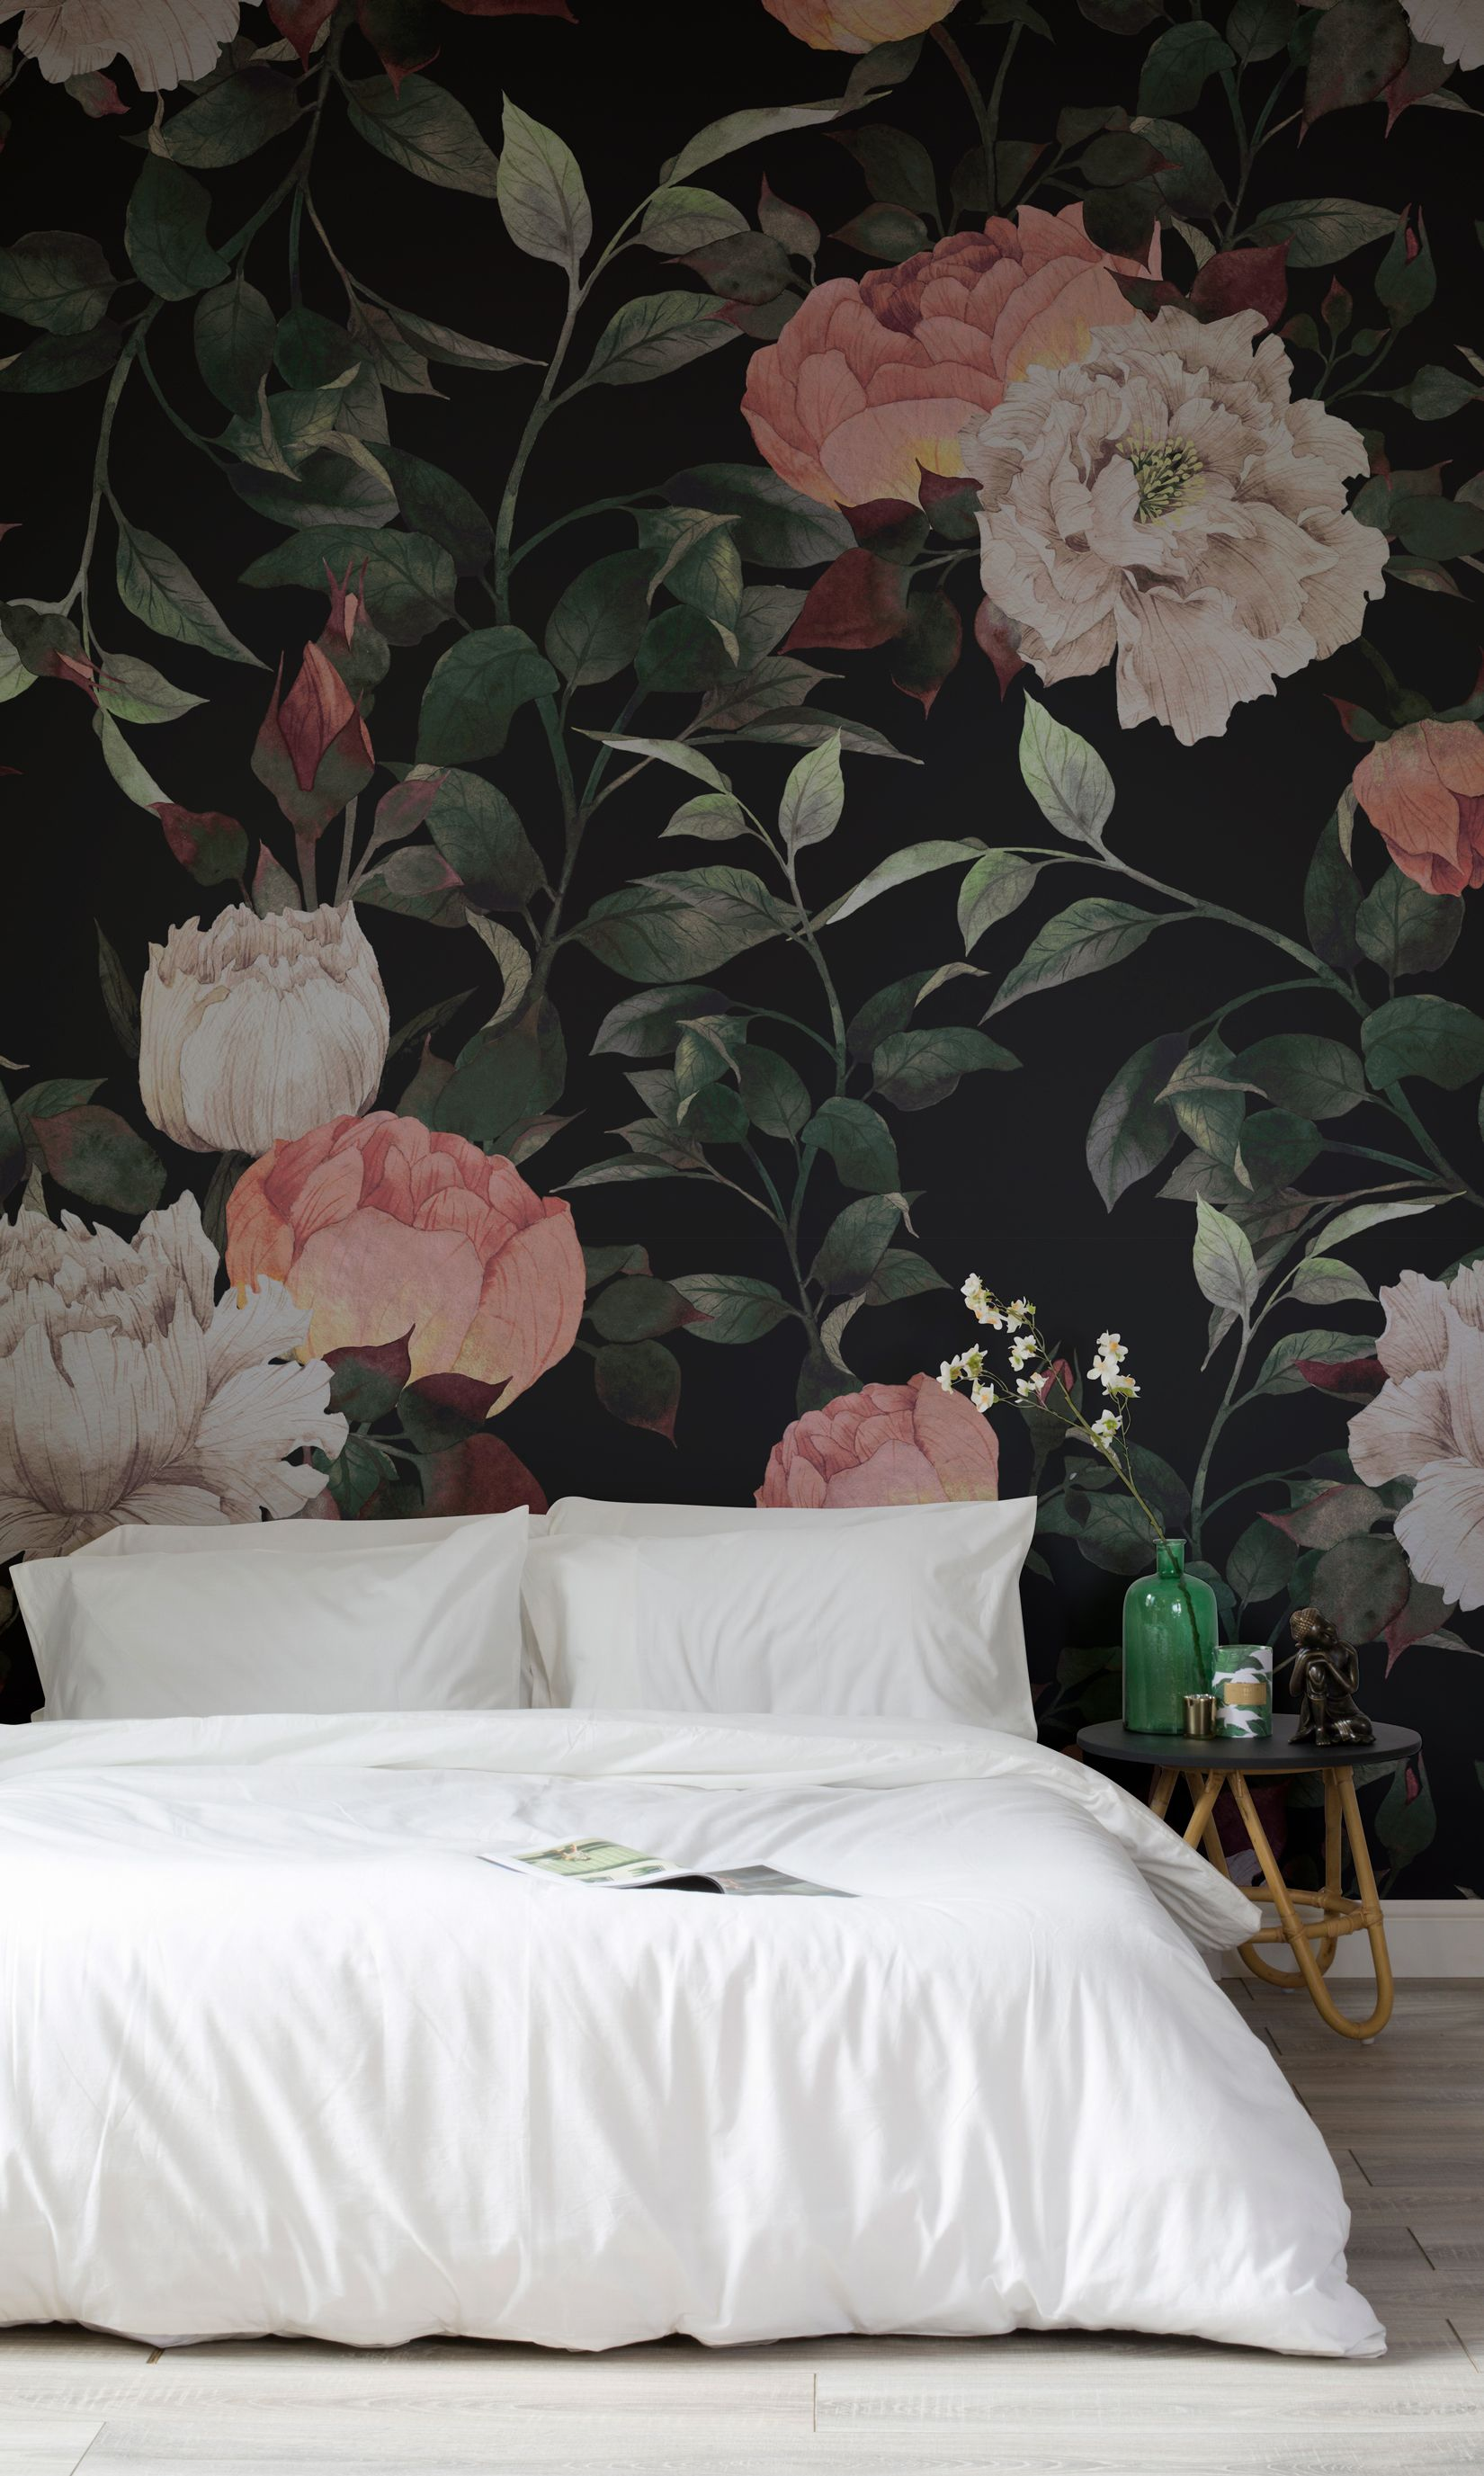 Dark Vintage Floral Wall Mural Home Decor Vintage Floral